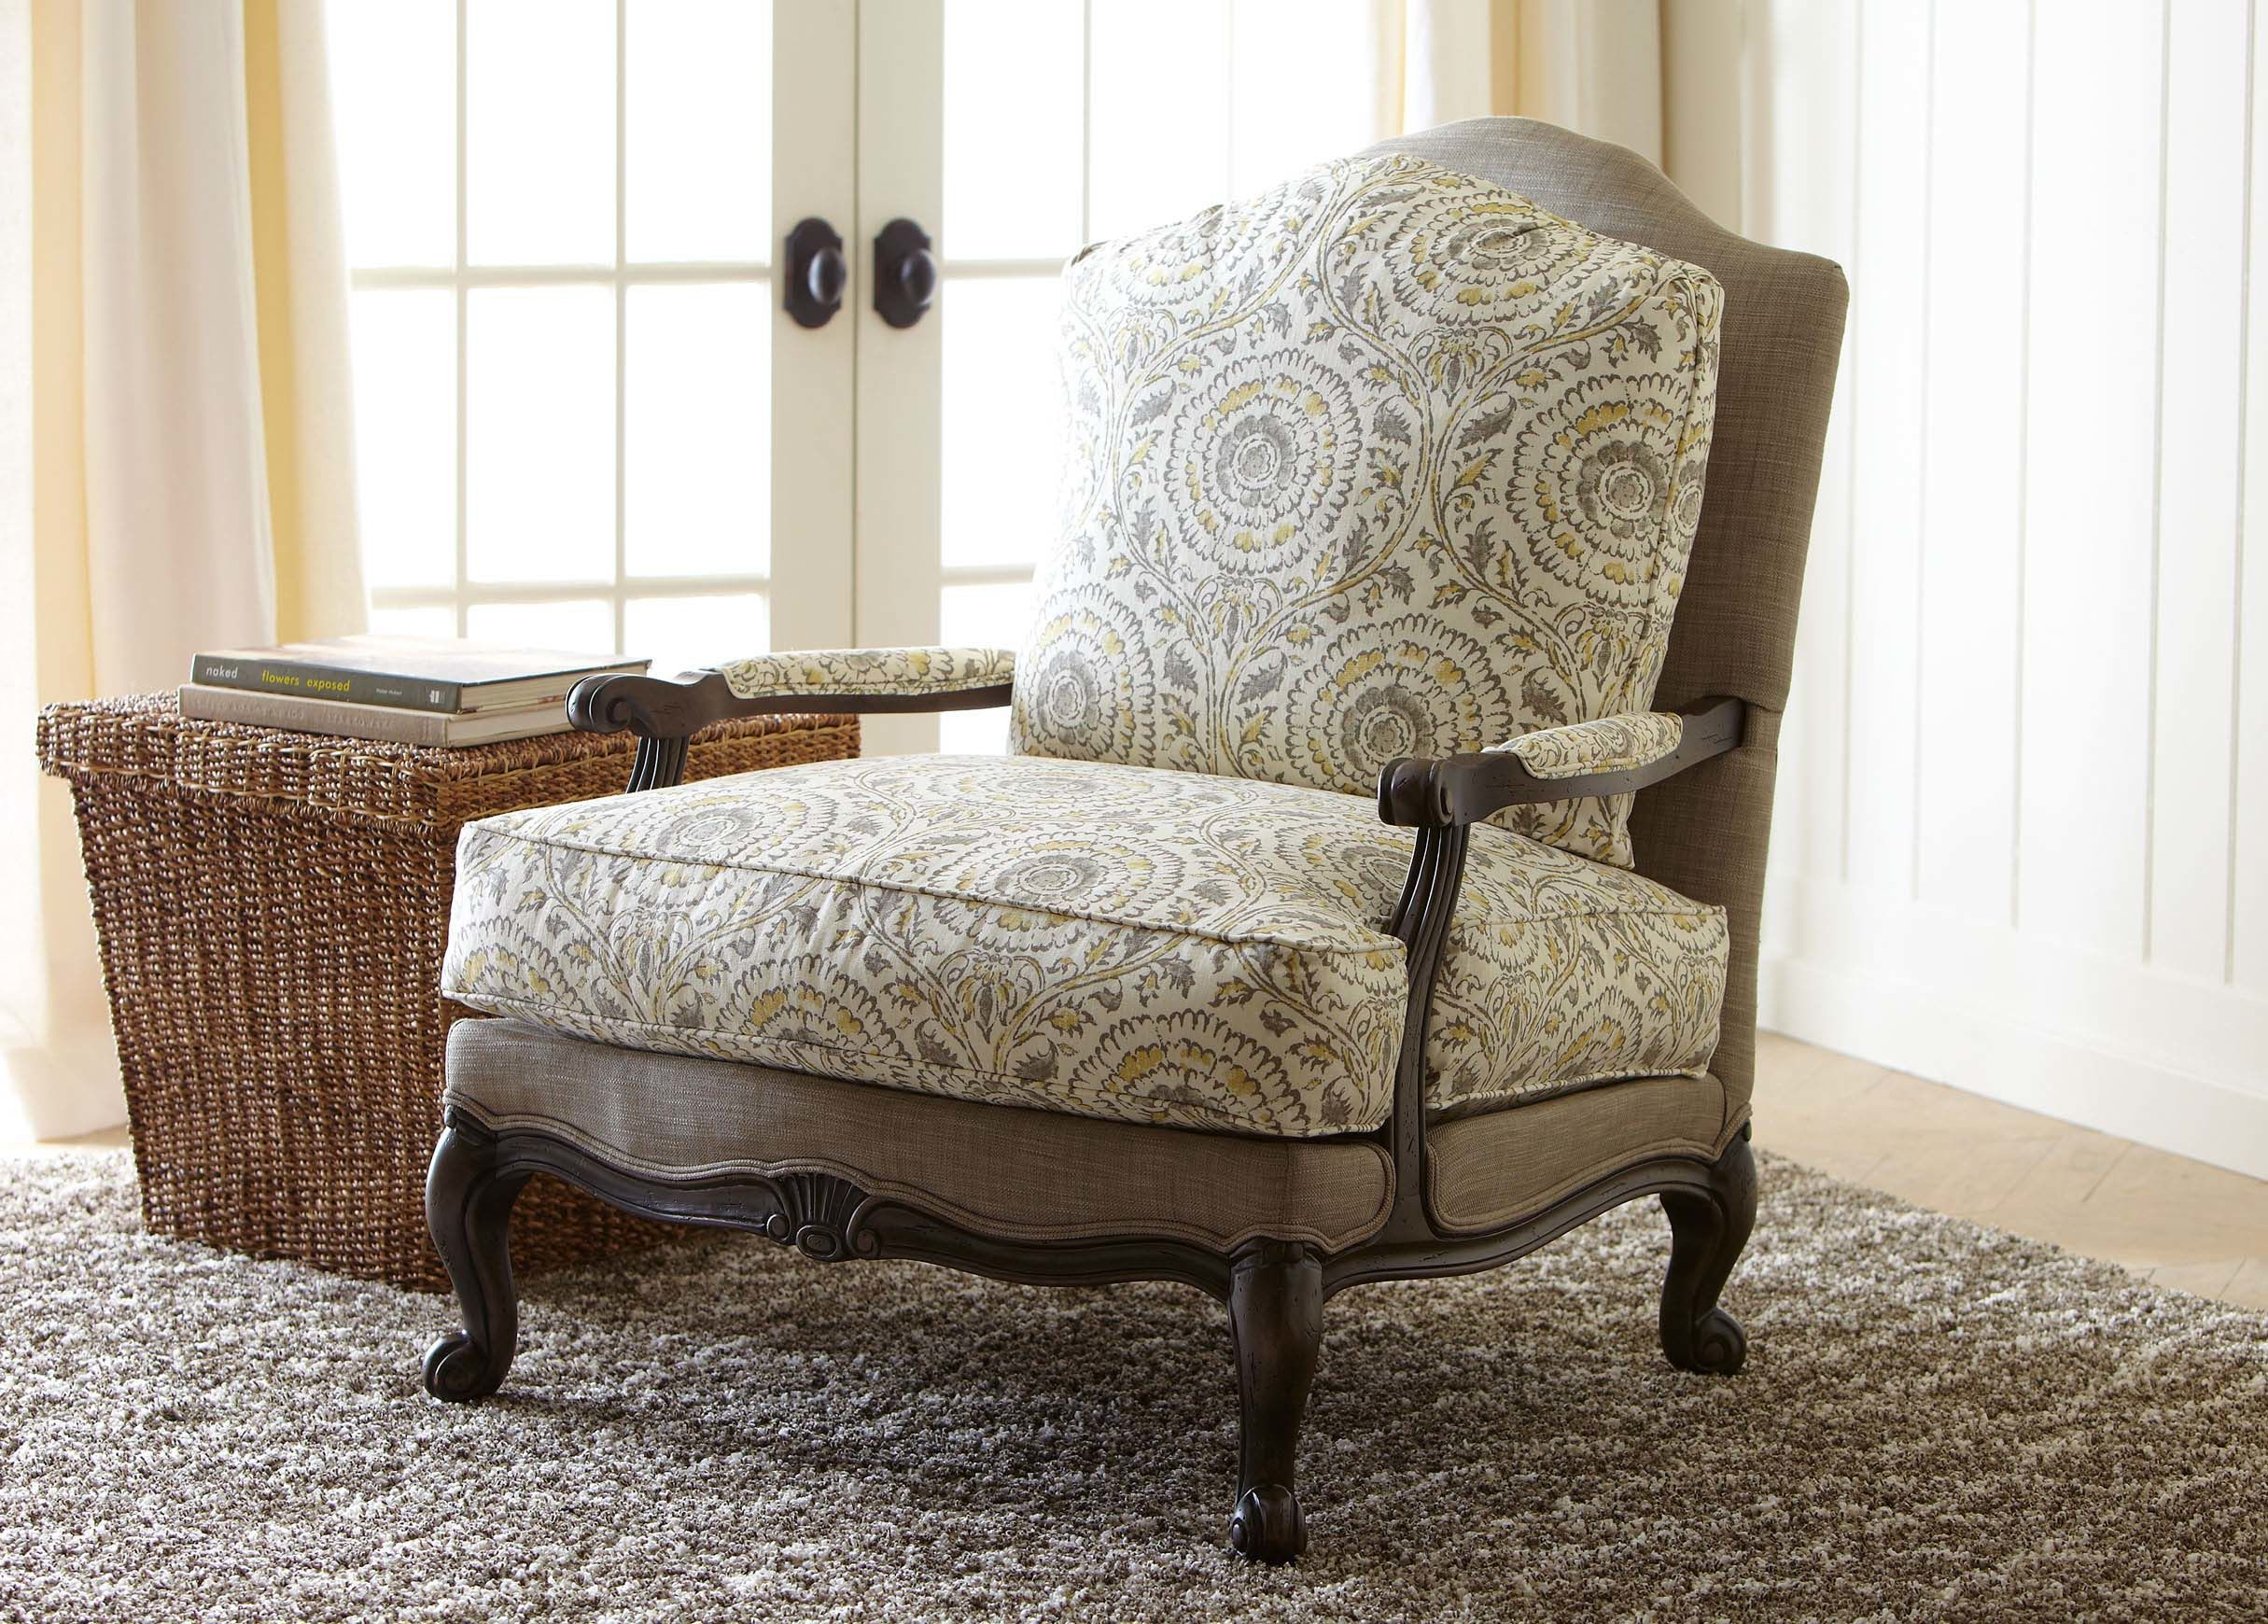 Ethan Allen Wingback Chairs Small Wooden Chair Harris Interior Traditional Home Pinterest